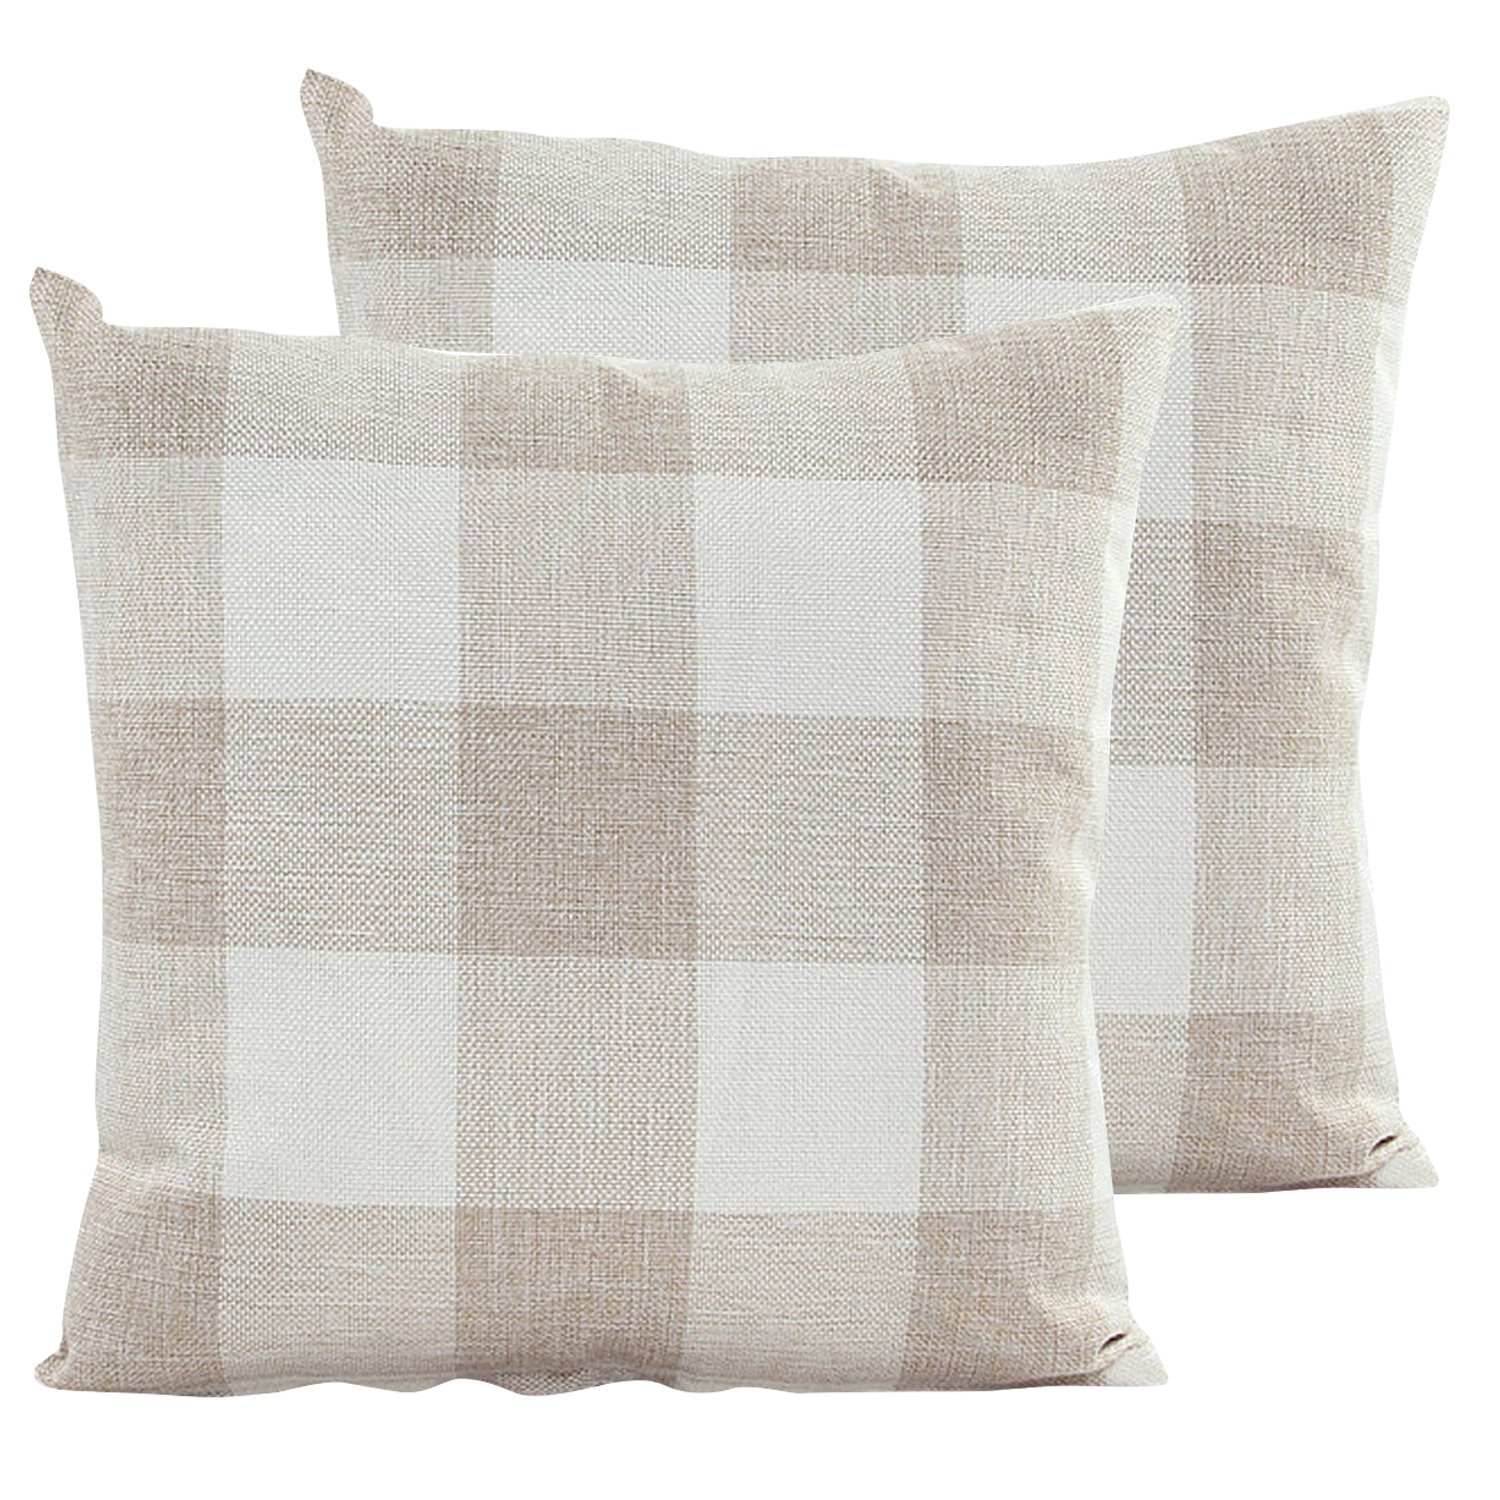 Cheap 24 X 24 Pillow Covers Find 24 X 24 Pillow Covers Deals On